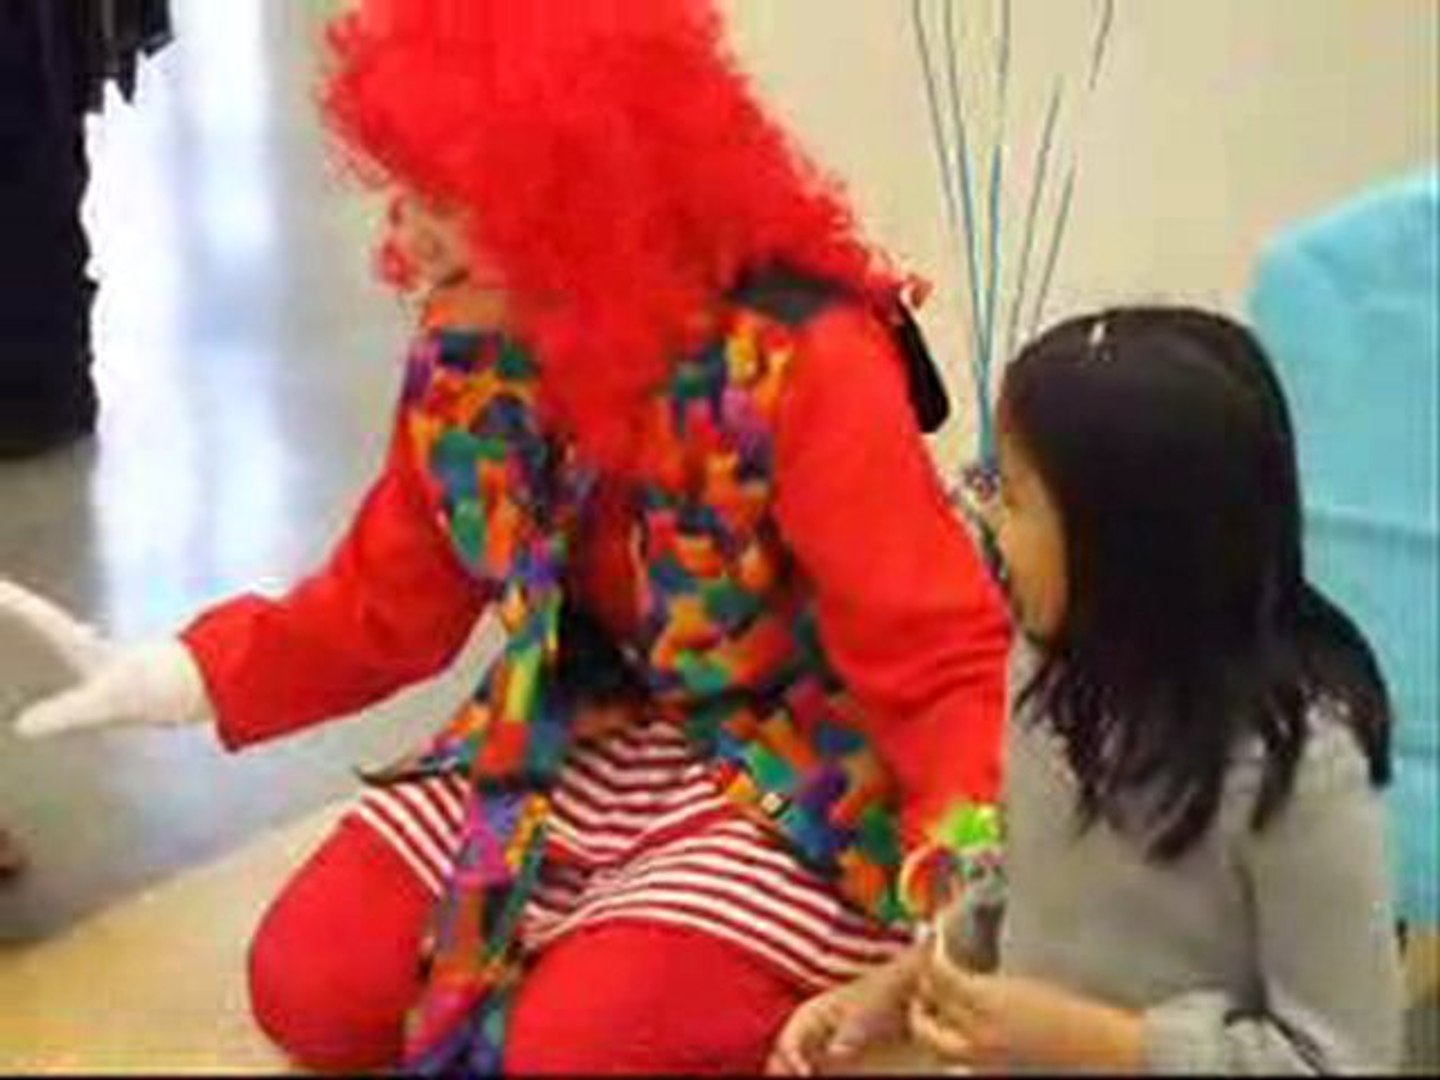 EntertAIner cLOWn wiTH roBOTs bRIngs teArs of haPPiness to d